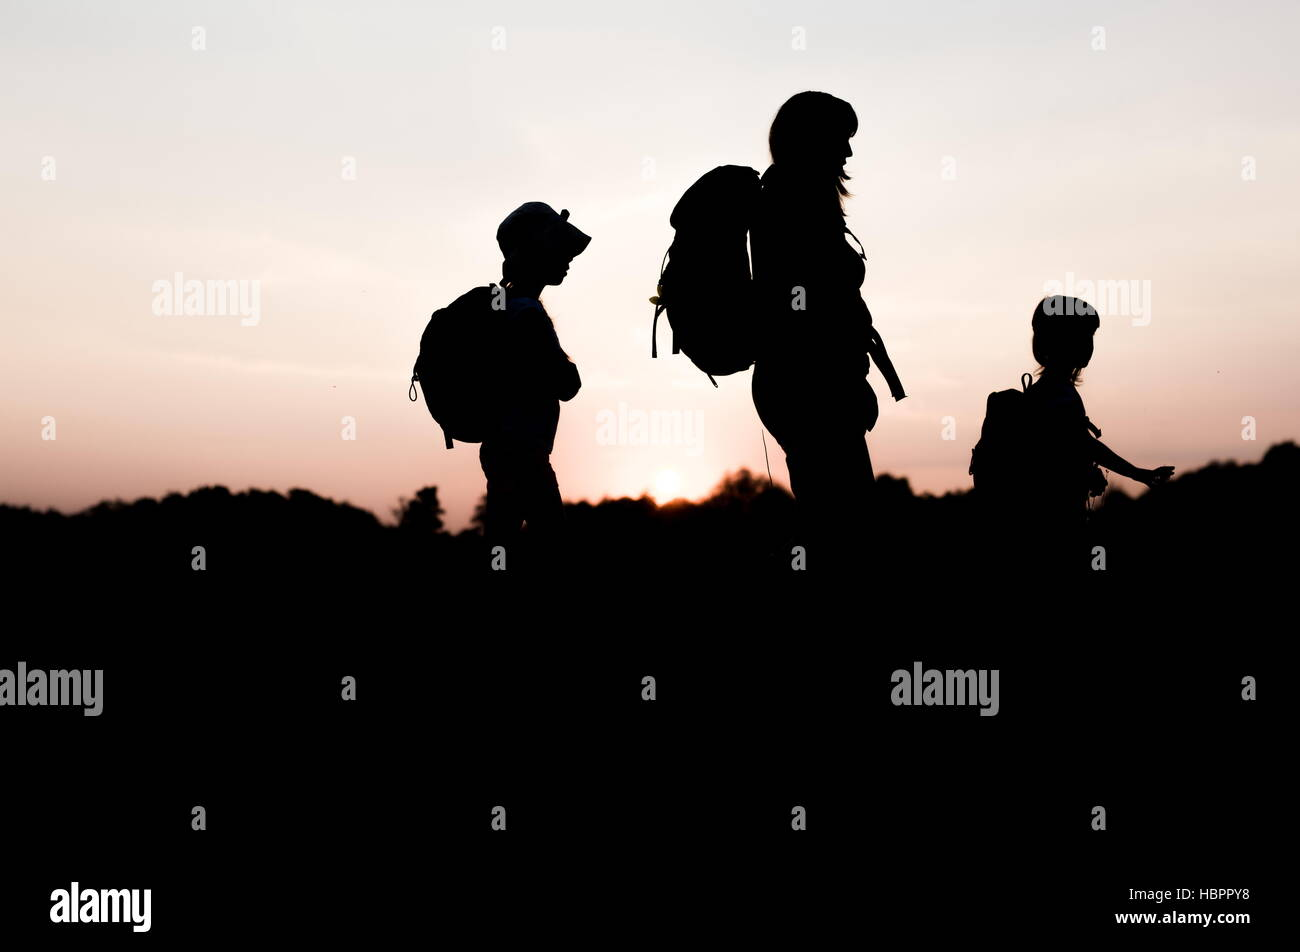 Silhouette Of Family Hiking At Sunset Happy On Summer Vacation In Mountains Mom And Kids Carry Backpacks Travellers Walking Cliff Edge S